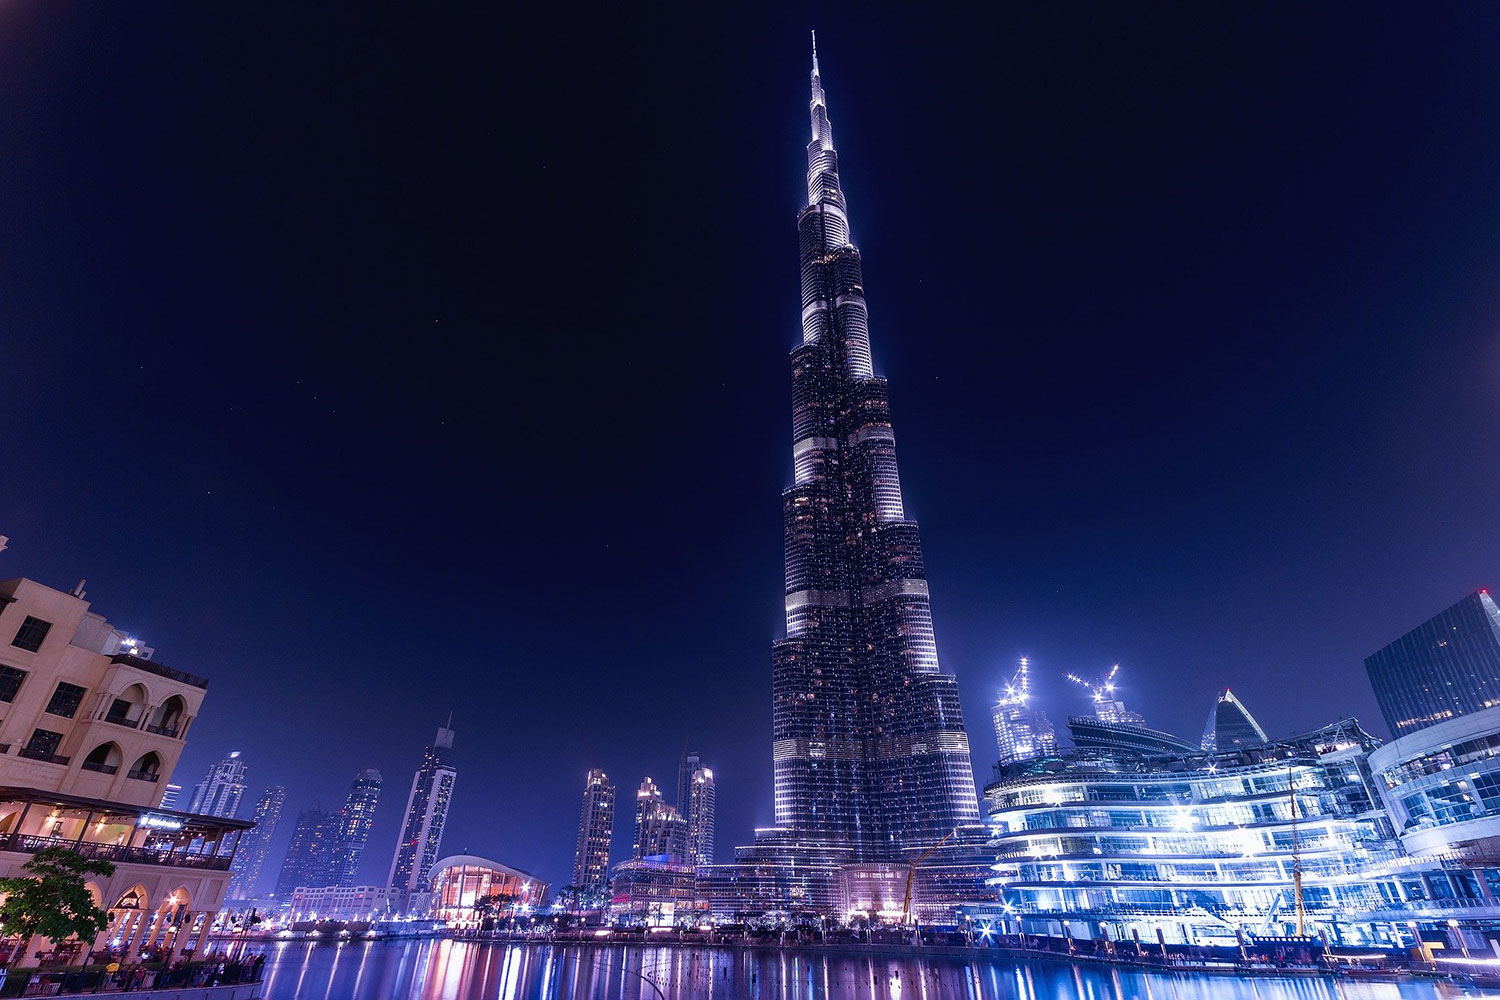 Burj Khalifa, Dubai. Currently the tallest building in the world at 828 metres, since 2009